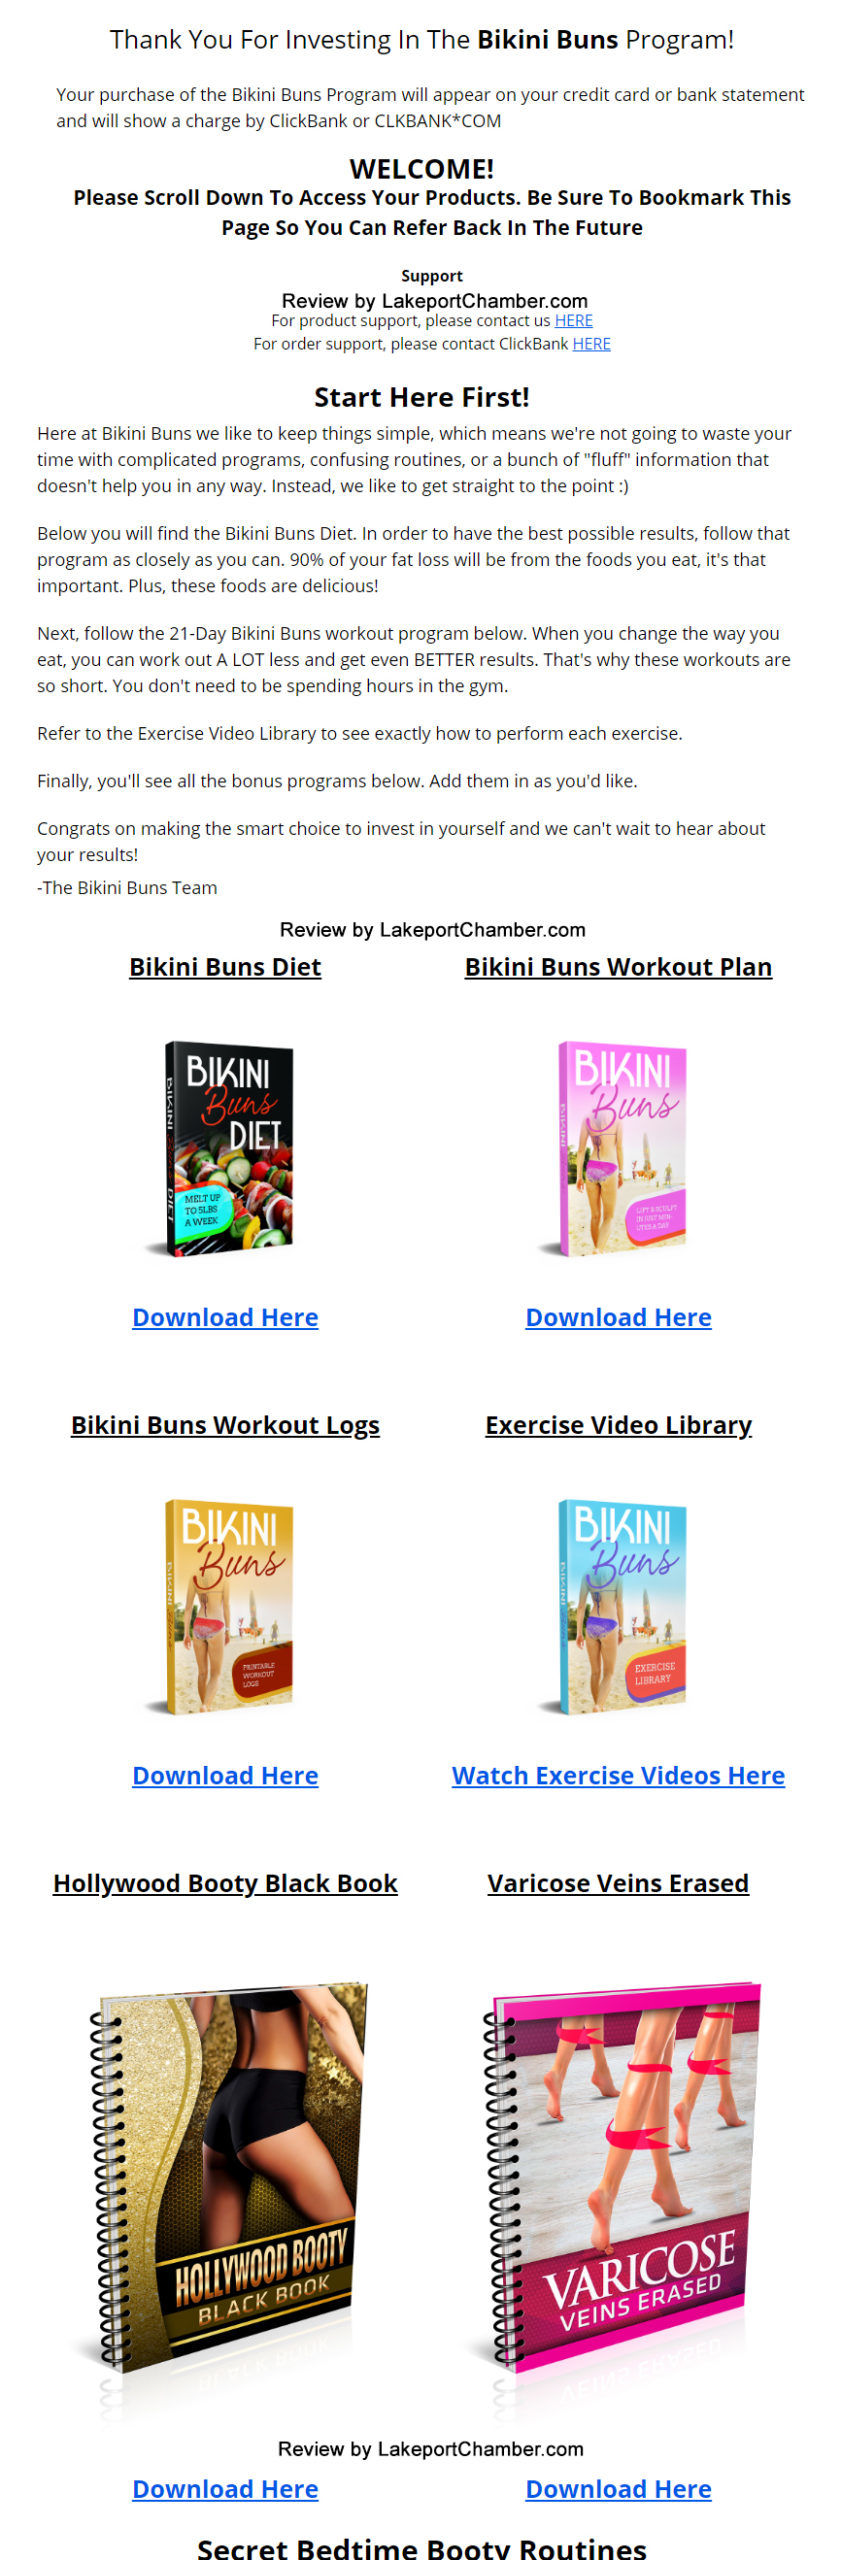 The Bikini Buns Program Download Page